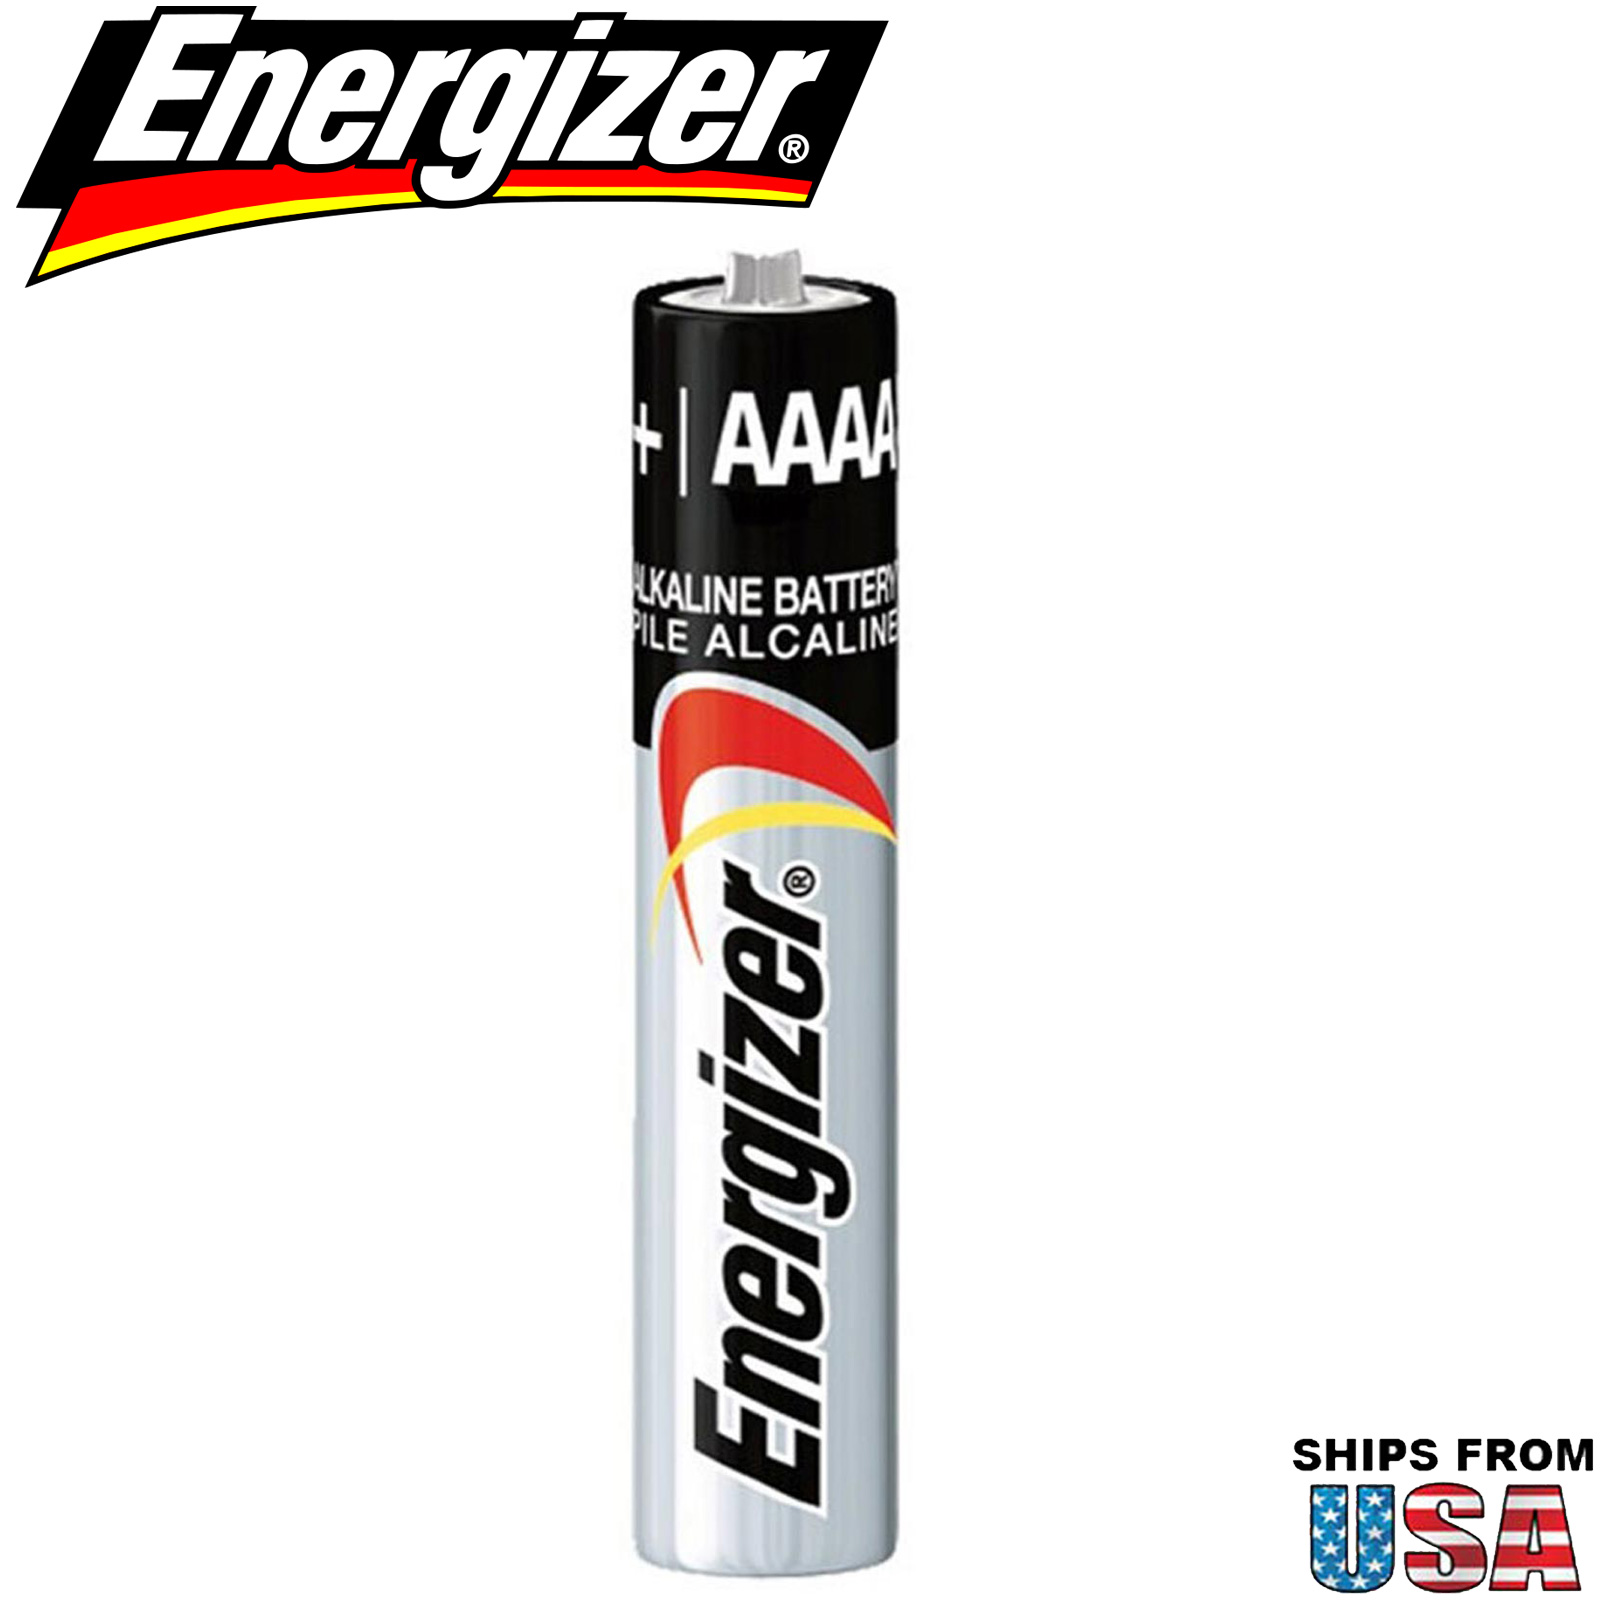 Energizer E96 1.5v Alkaline Battery AAAA Replaces LR8D425 MN2500   FAST USA SHIP